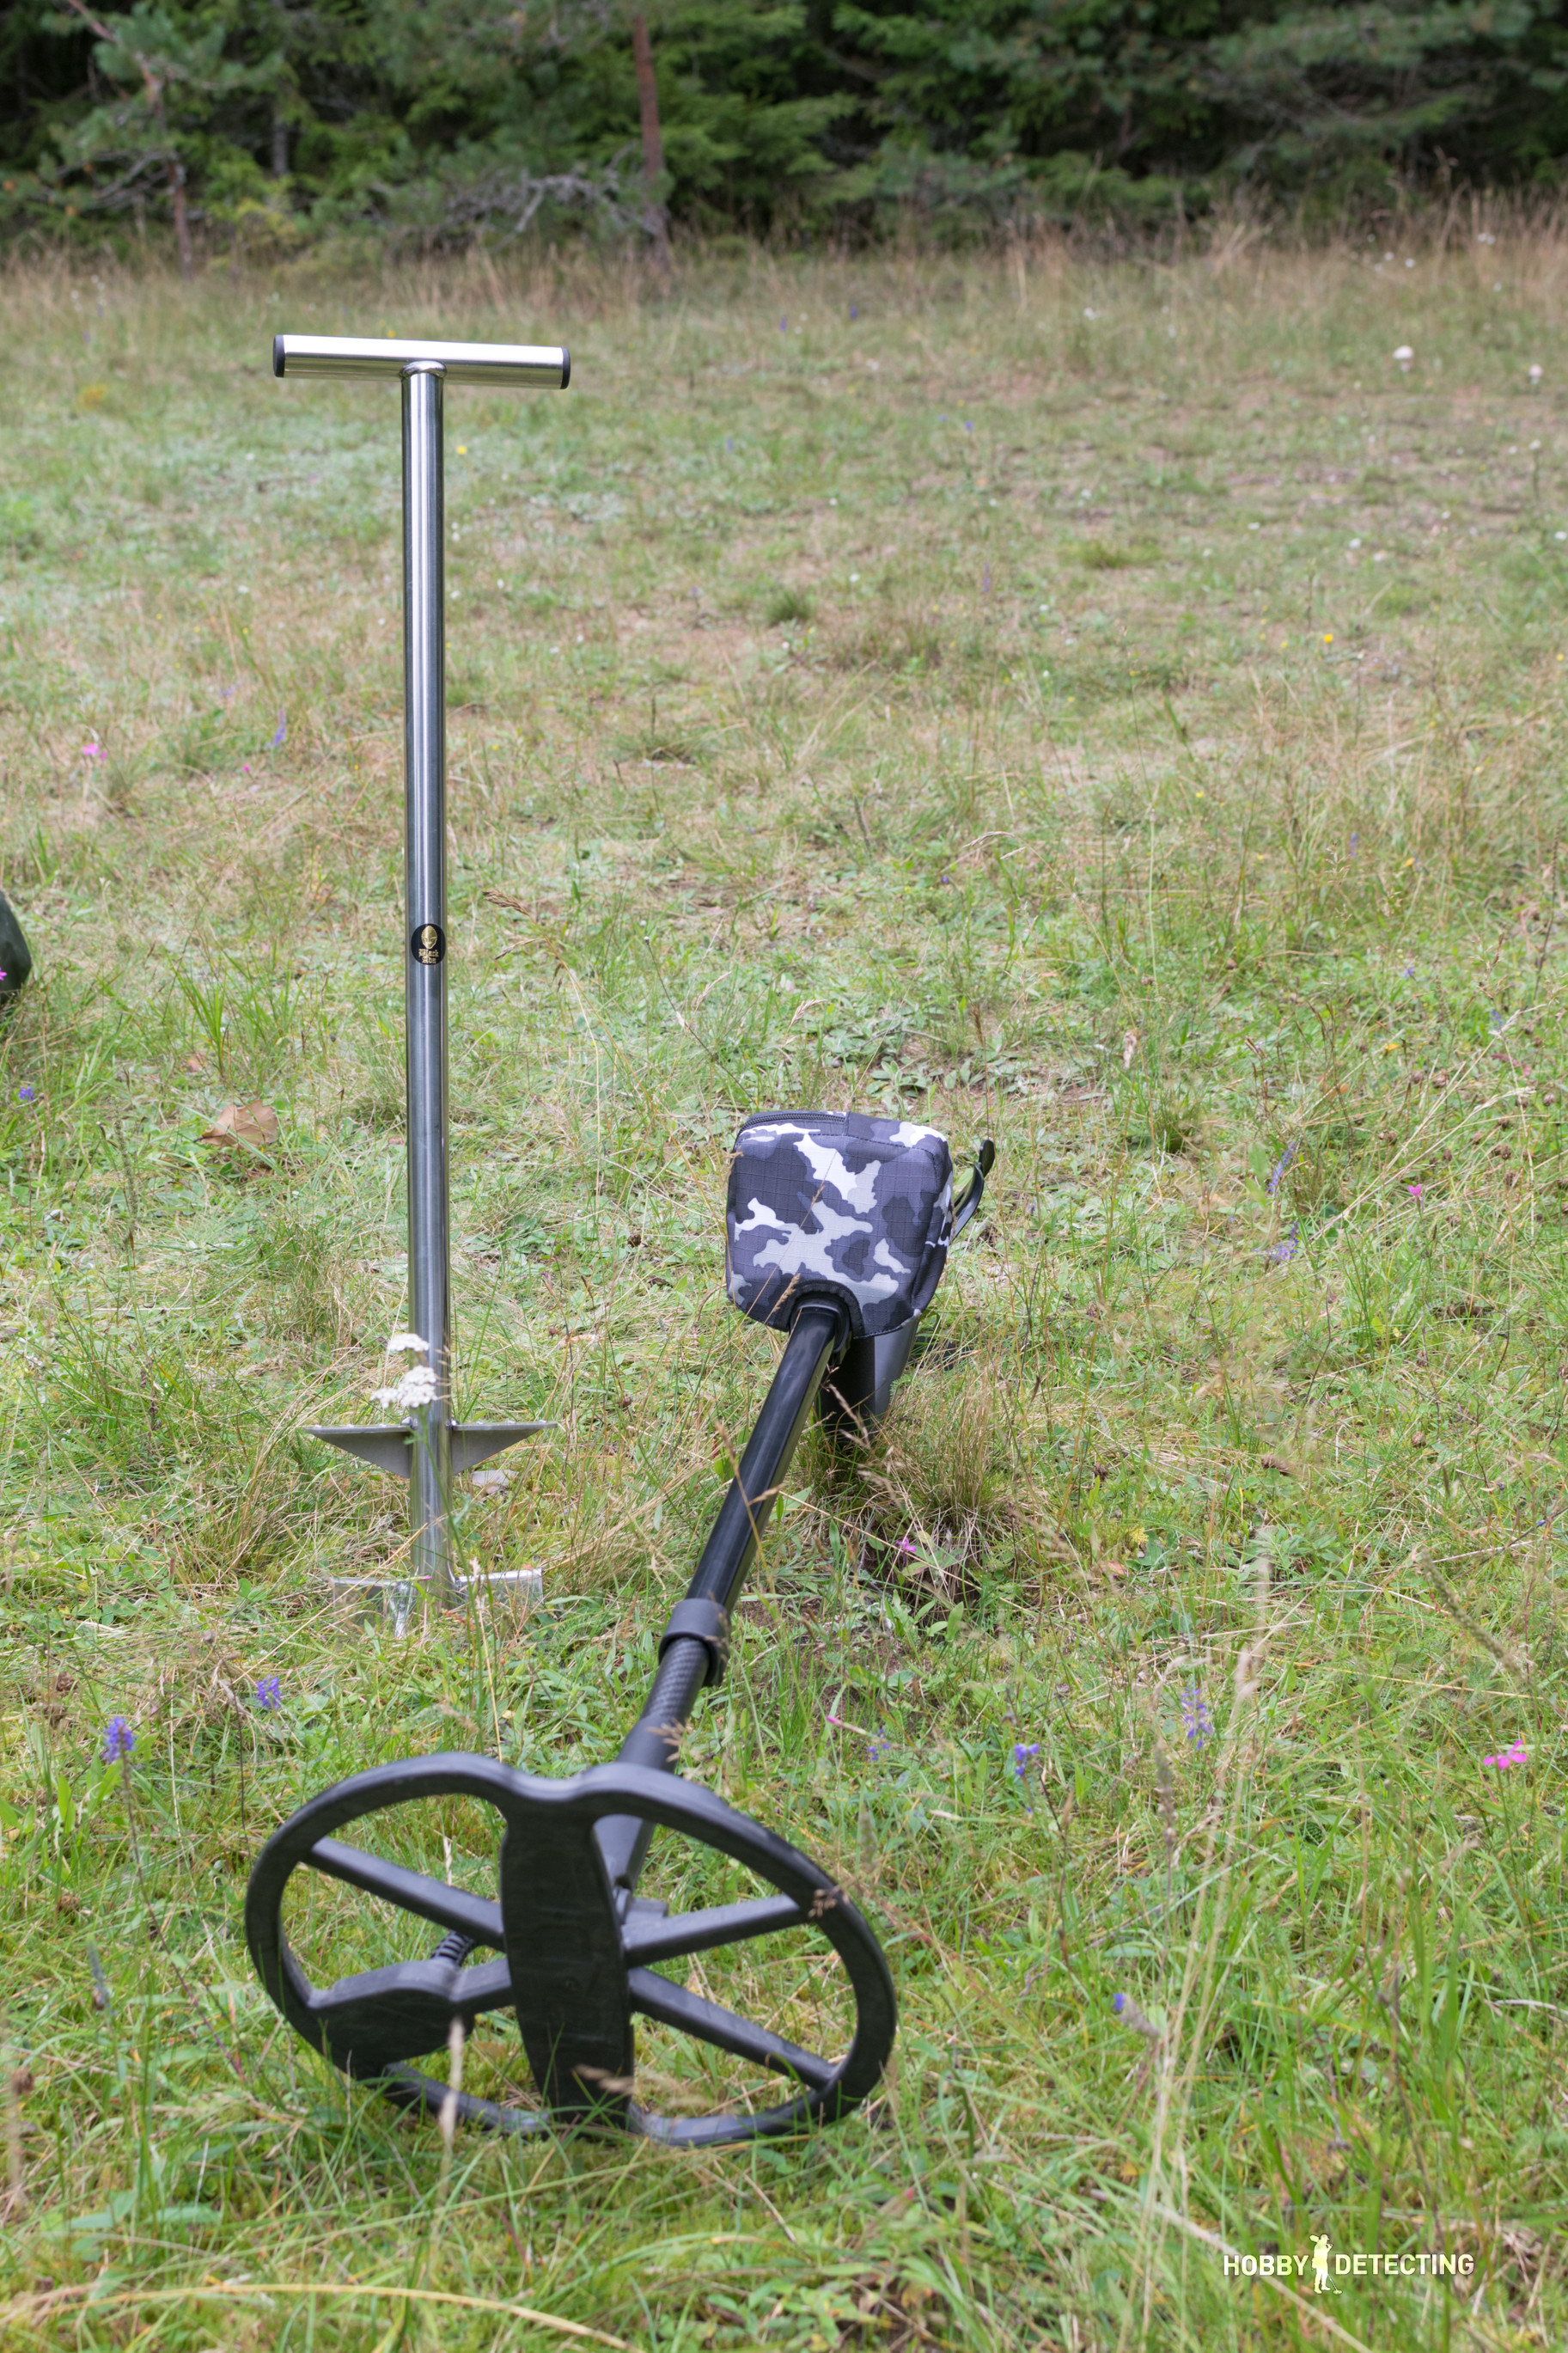 Minelab E-Trac – Though Outdated, But Still A Serious